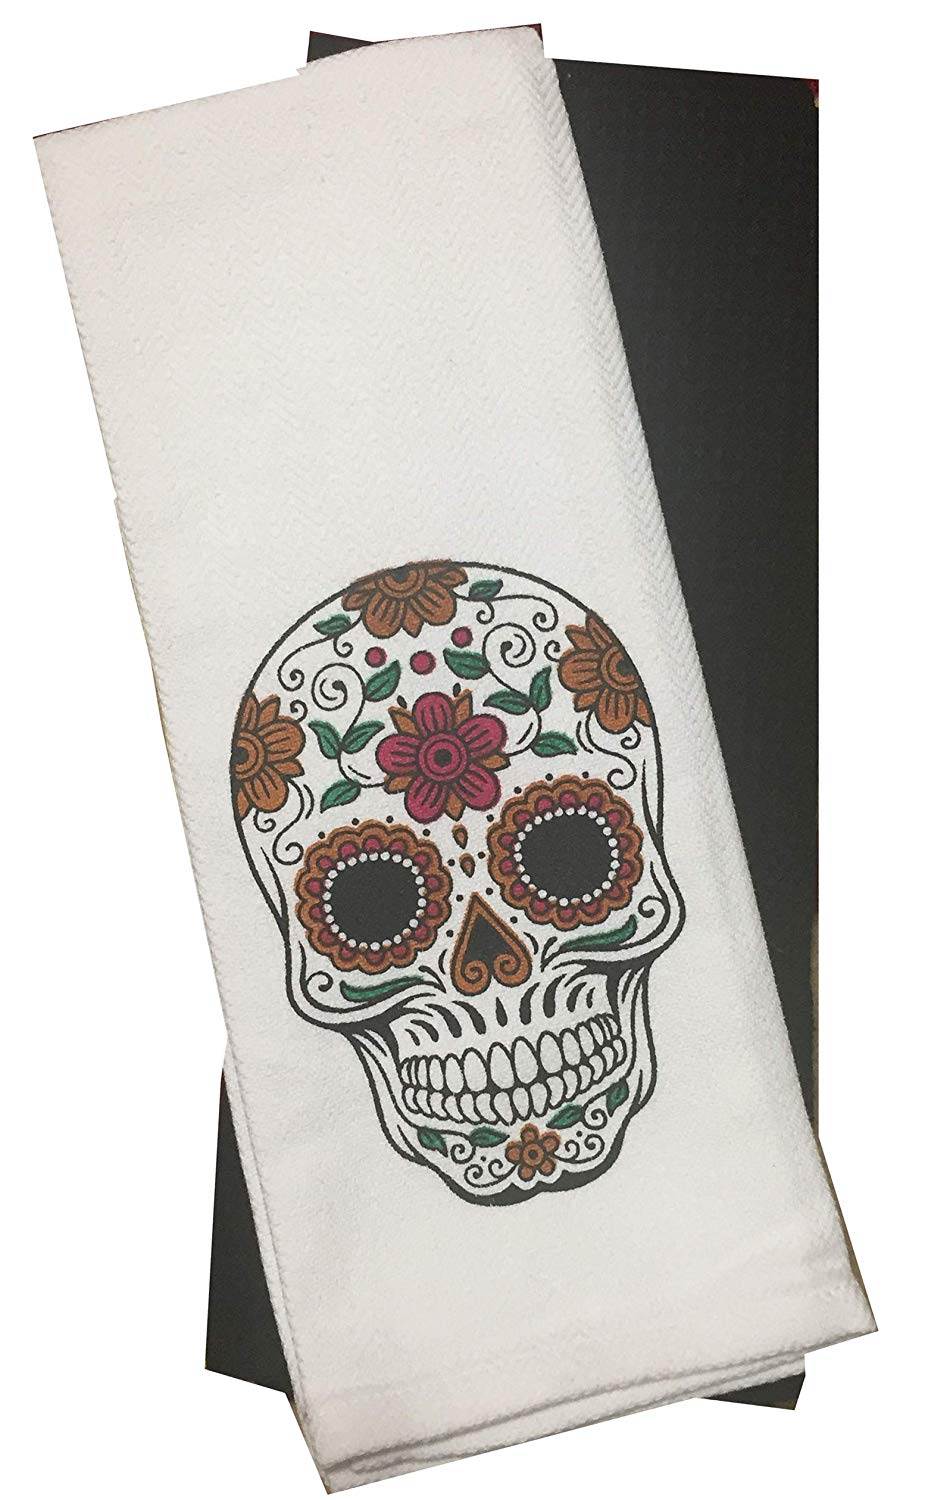 Day of the Dead Skull Halloween Design Kitchen Towels - 2 Pack 16 x 28 in